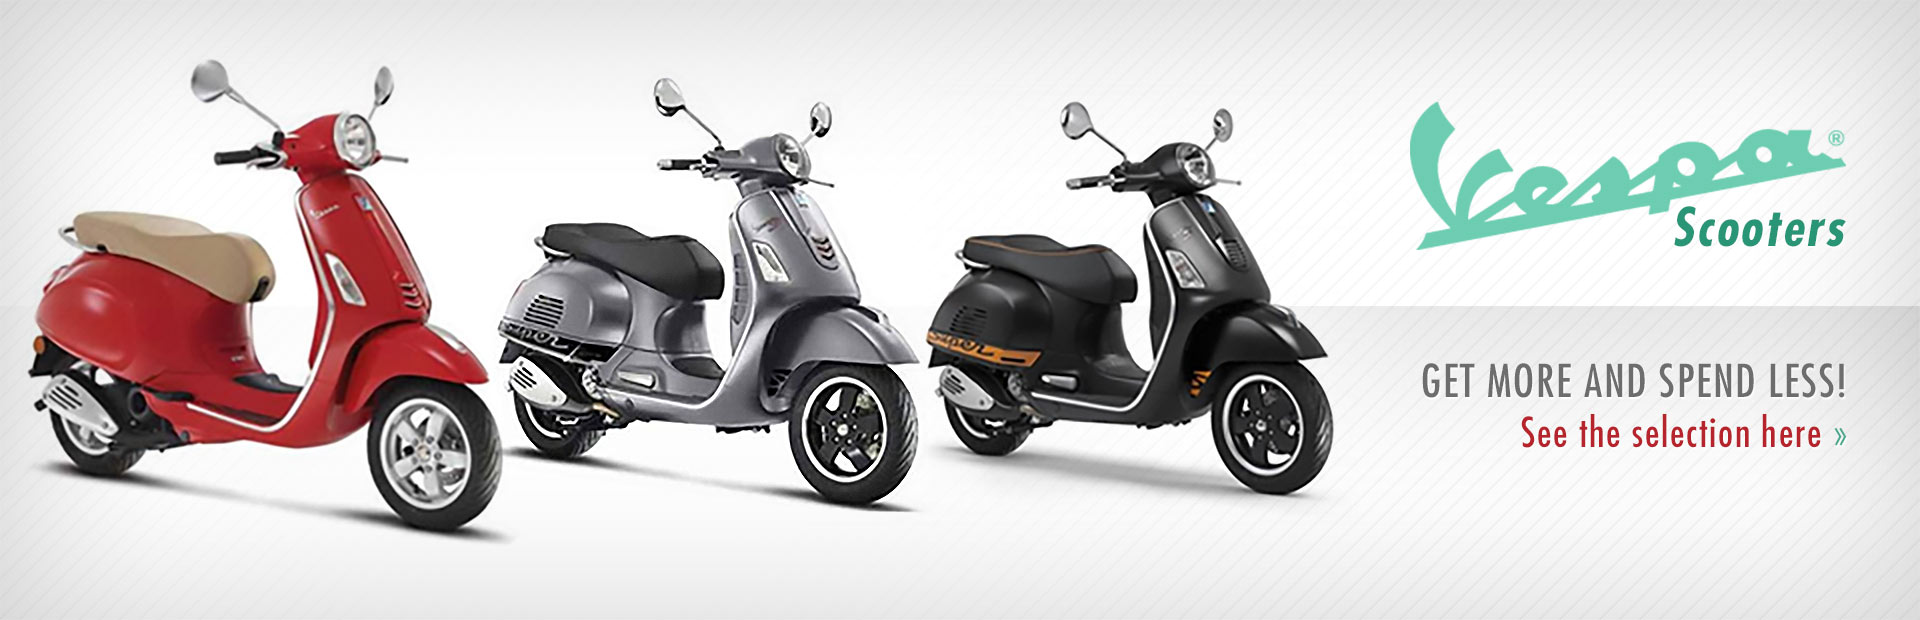 Vespa Scooters: Click here to view the showcase!